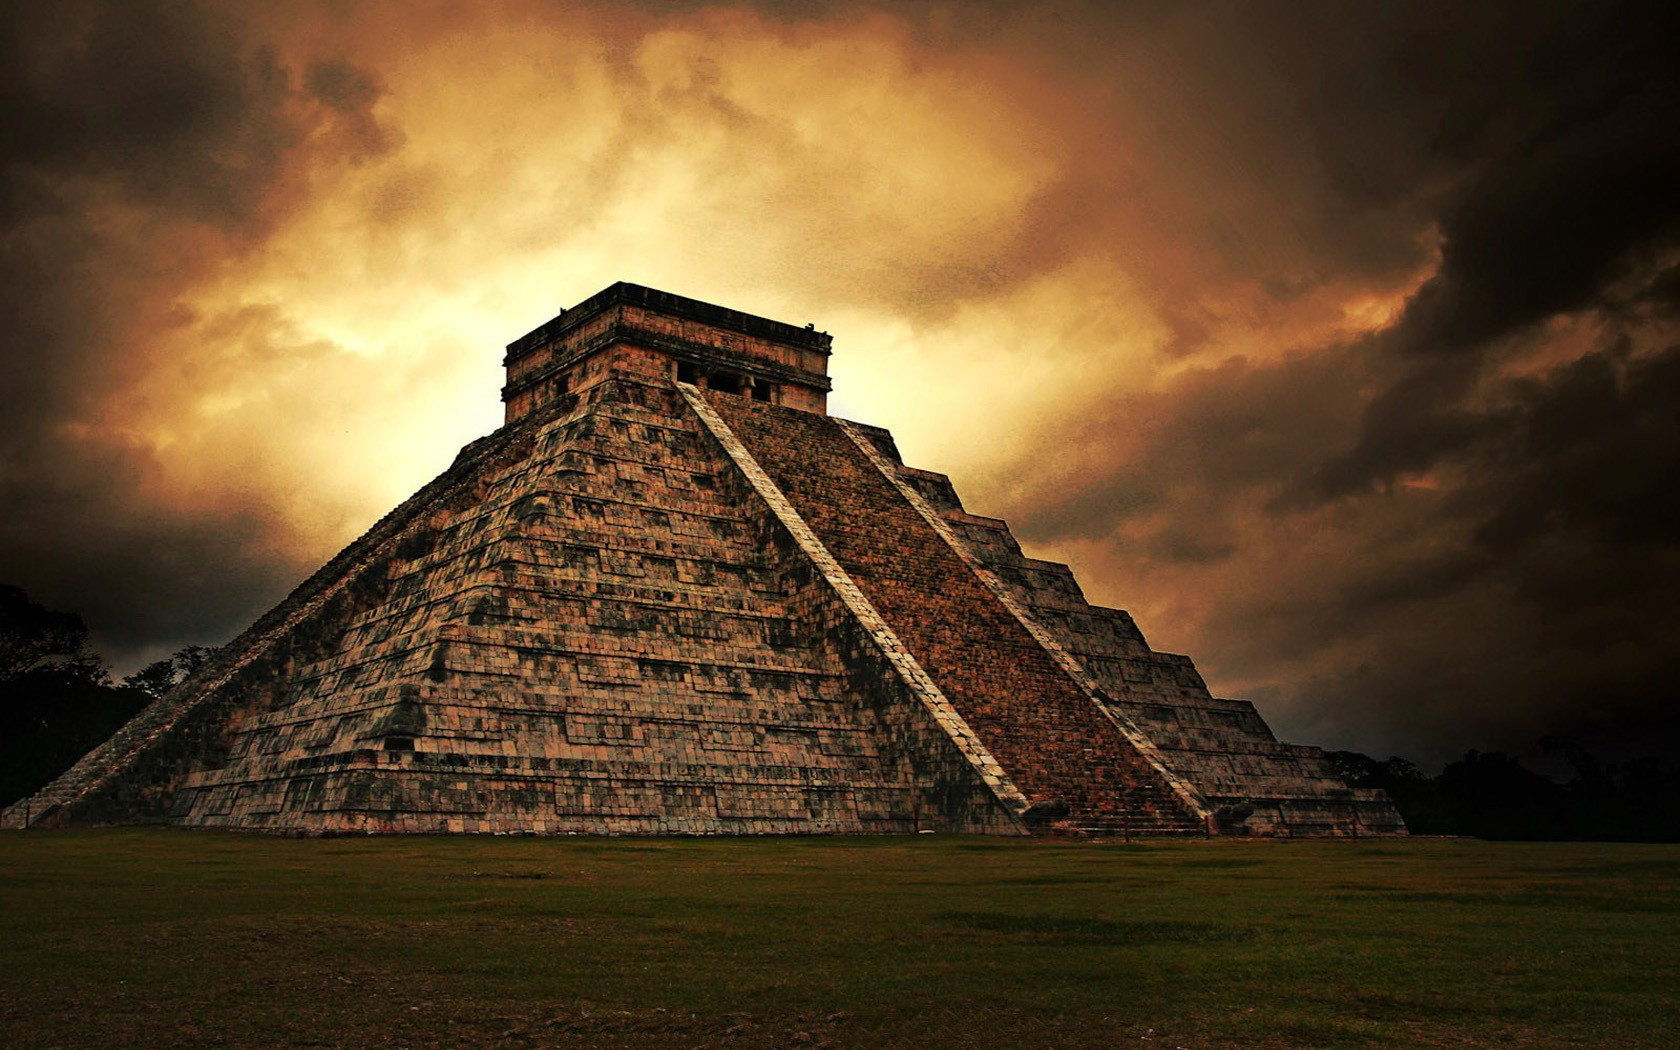 a look at the egyptian and mayan pyramids Undoubtedly the mayan pyramids are much older than the egyptian pyramids regardless of what official thought is the similarity in tibetan, mayan and egyptian languages indicates a common root.